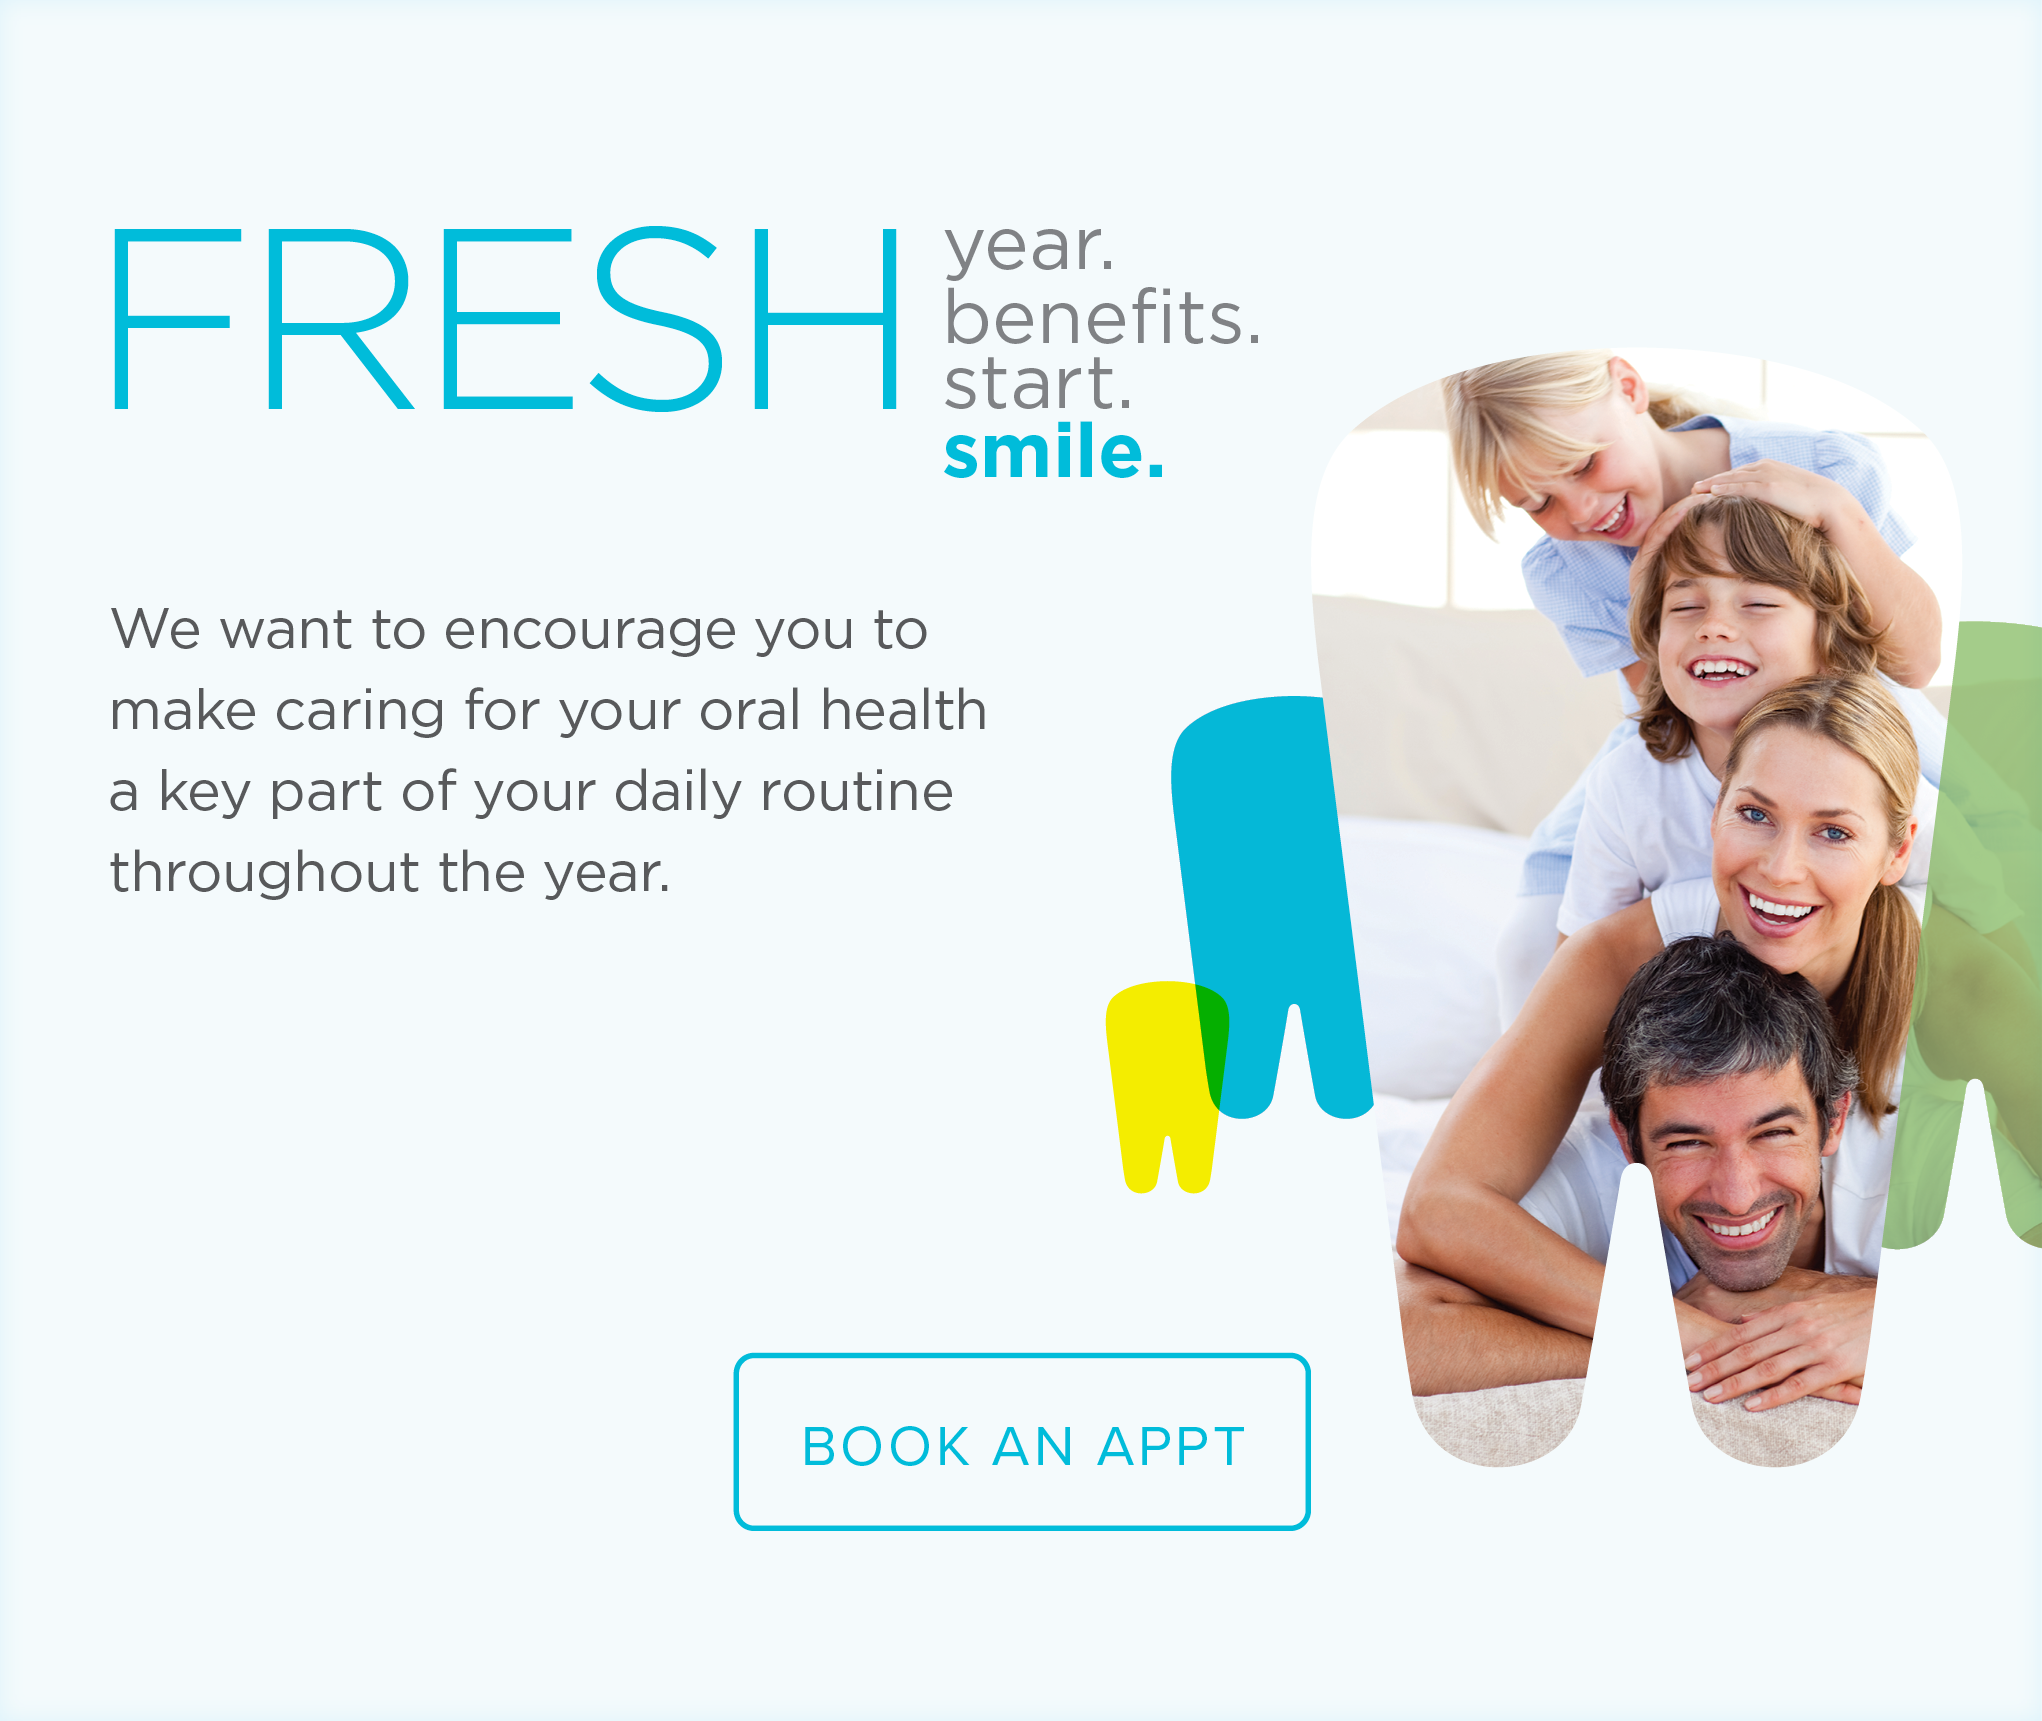 Hub Plaza Dental Group and Orthodontics - Make the Most of Your Benefits